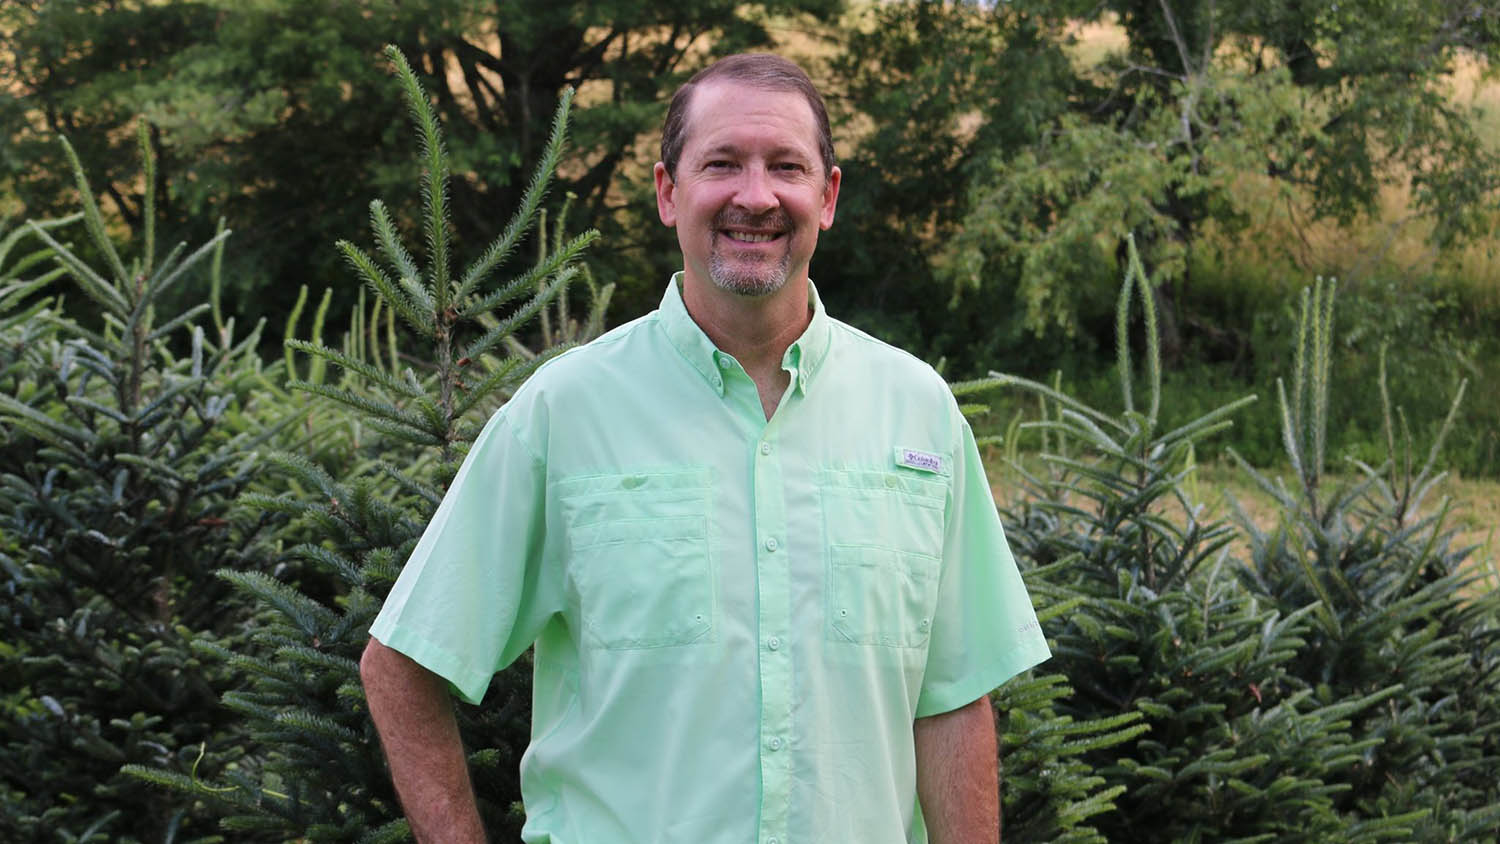 Man in green shirt standing in front of Fraser fir Christmas trees.